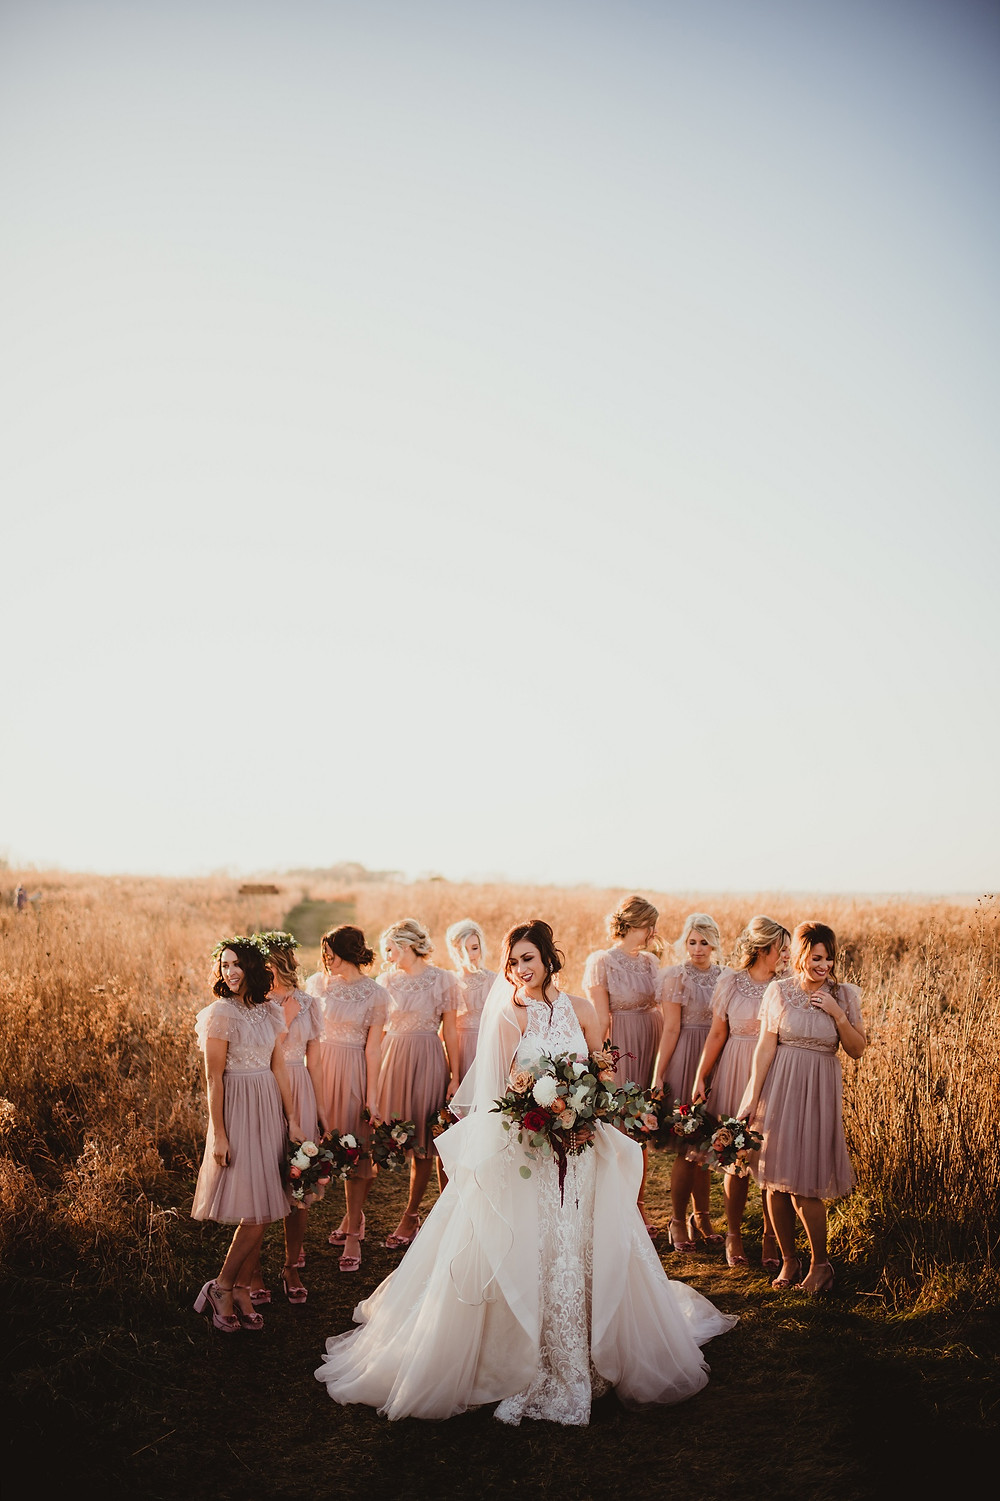 Bride and bridesmaids in an autumn field at sunset with fall bridal and bridesmaid garden bouquets by Studio Bloom Iowa